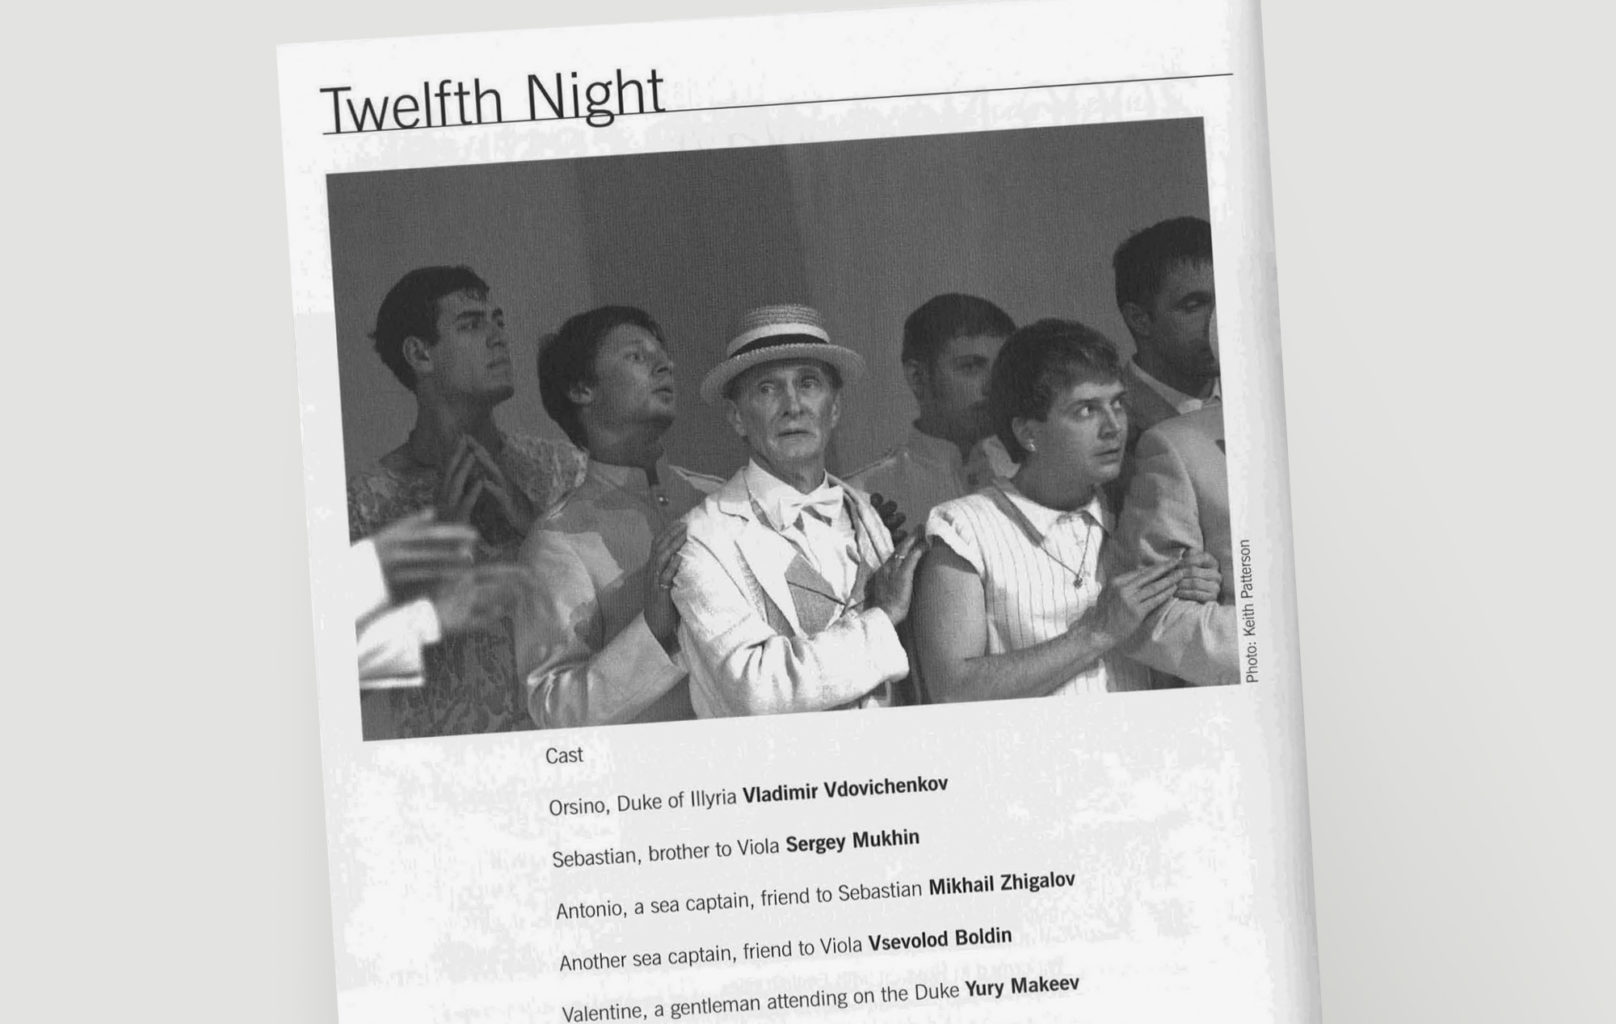 Programme for Twelfth Night at BAM Next Wave Festival in 2006